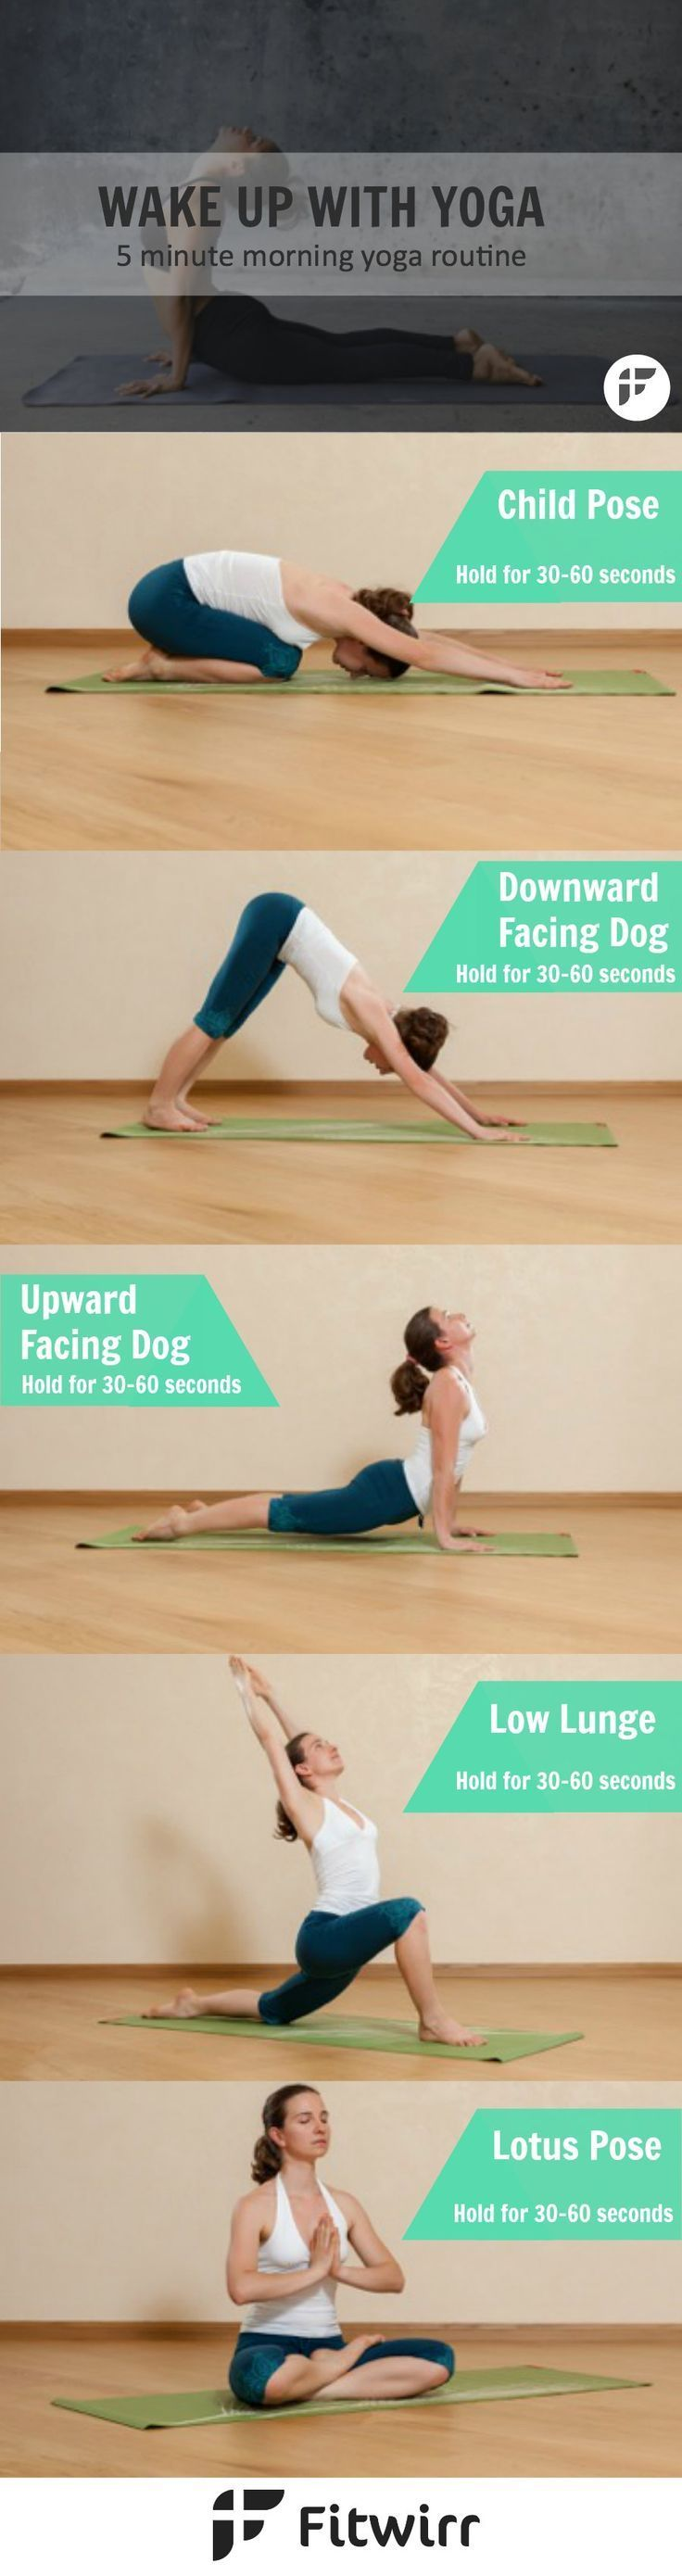 Wake Up With Yoga: 5 Minute Morning Yoga Routine